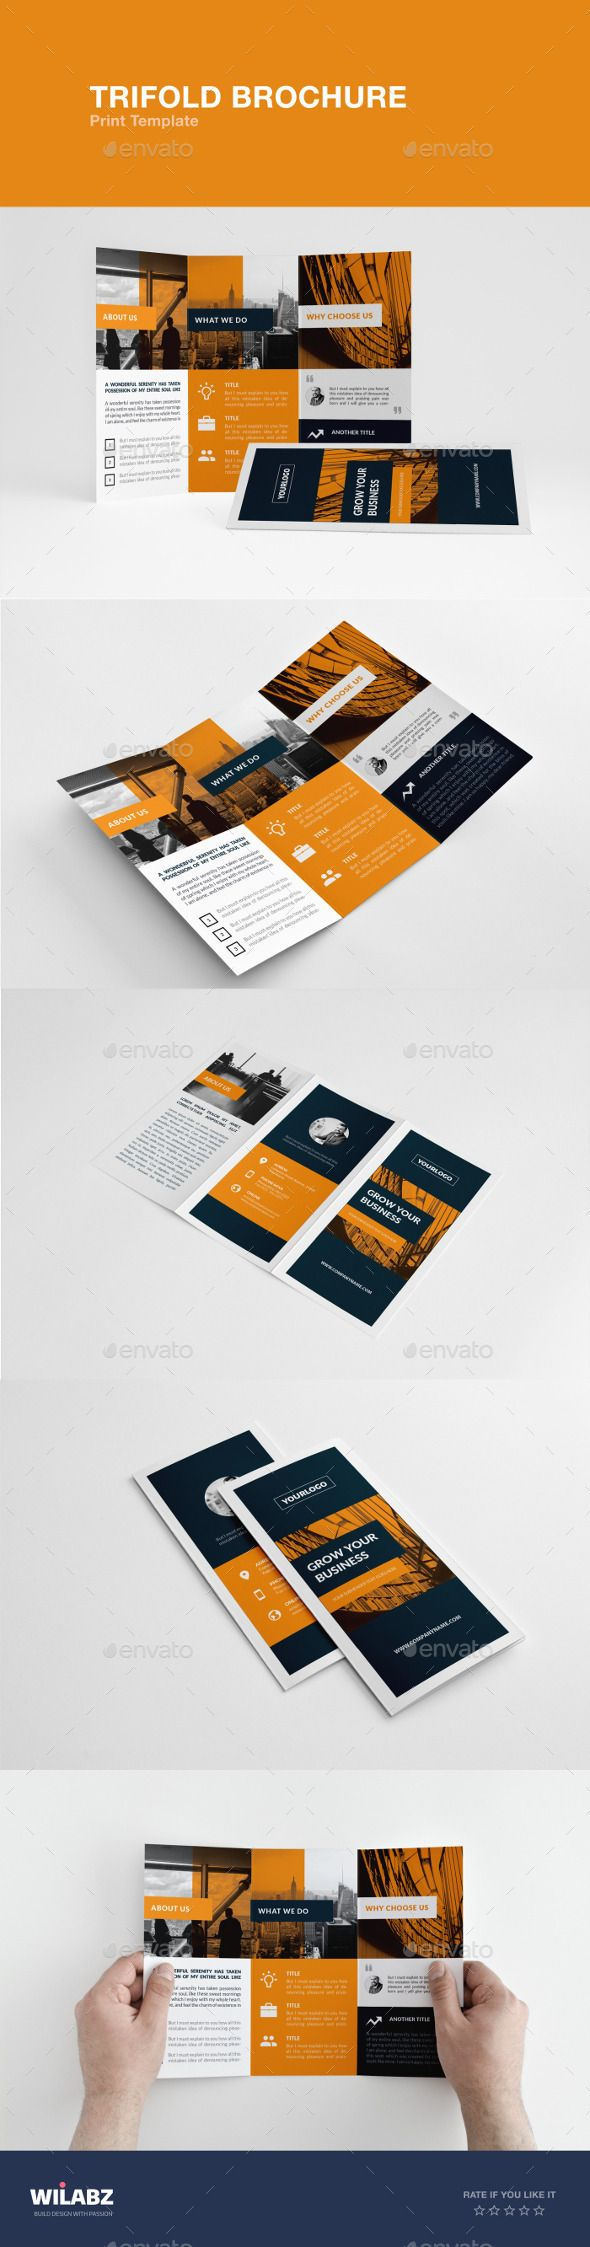 Trifold Brochure Template #design Download: http://graphicriver.net/item/trifold-brochure/12803790?ref=ksioks